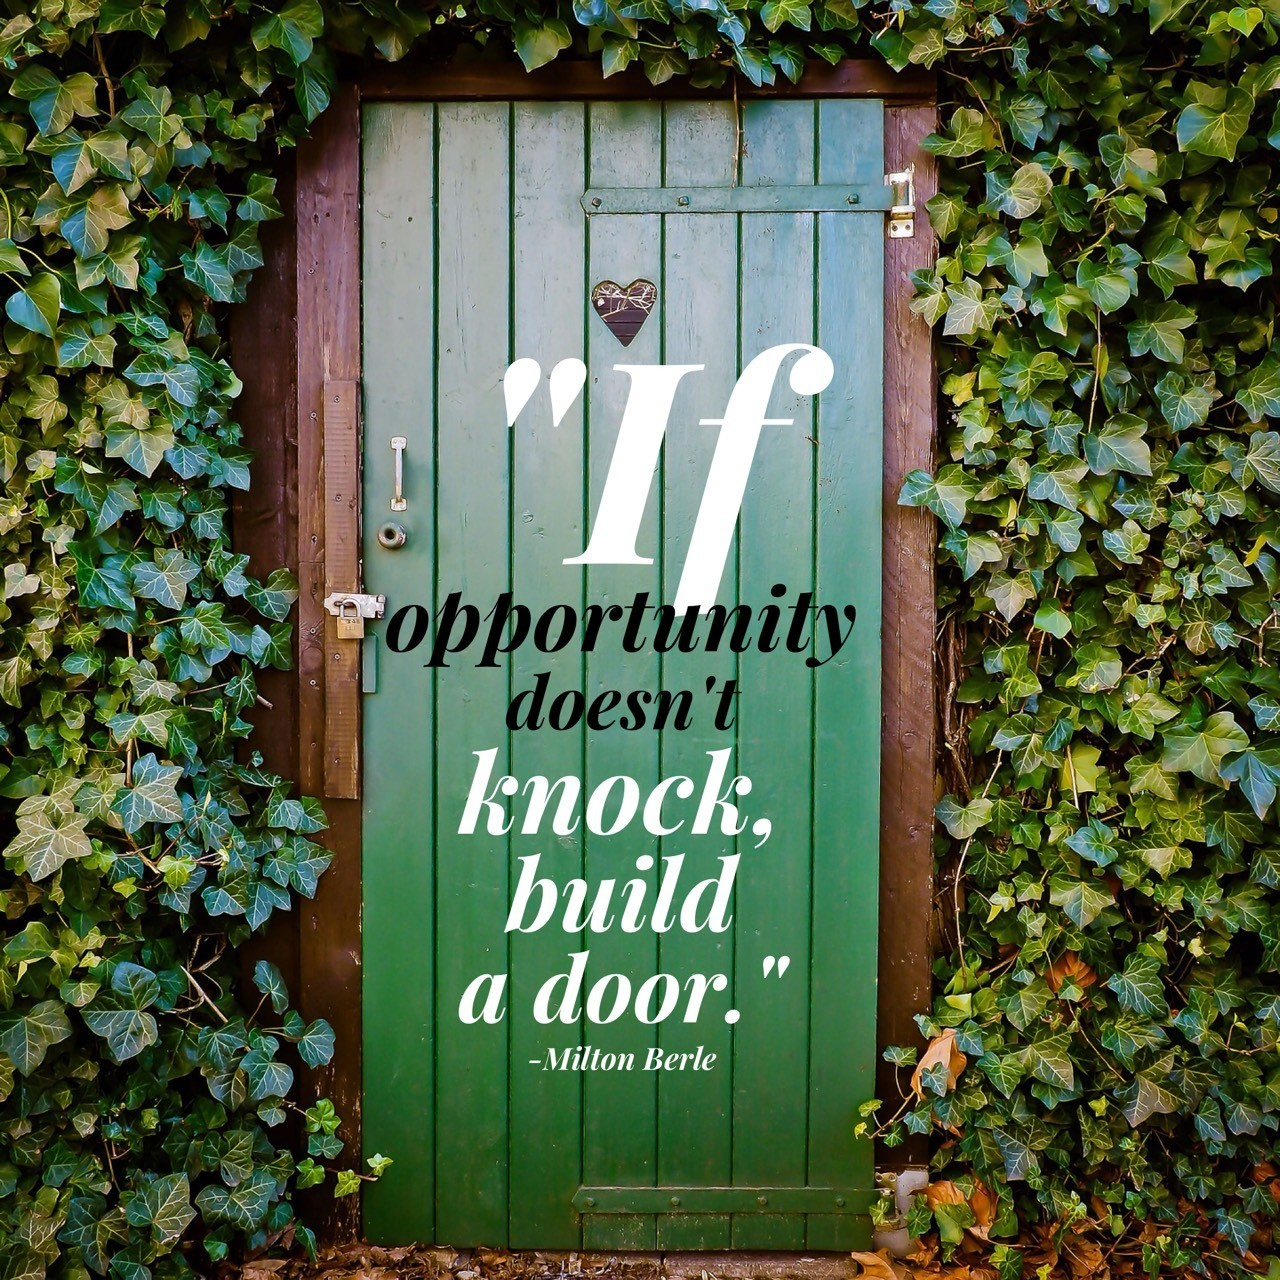 The opportunity exists. #investinyourself and #changeyourlife today. #wealthbuilding is essential in order to #buildyourempire www.myffu.com/ehriqa1